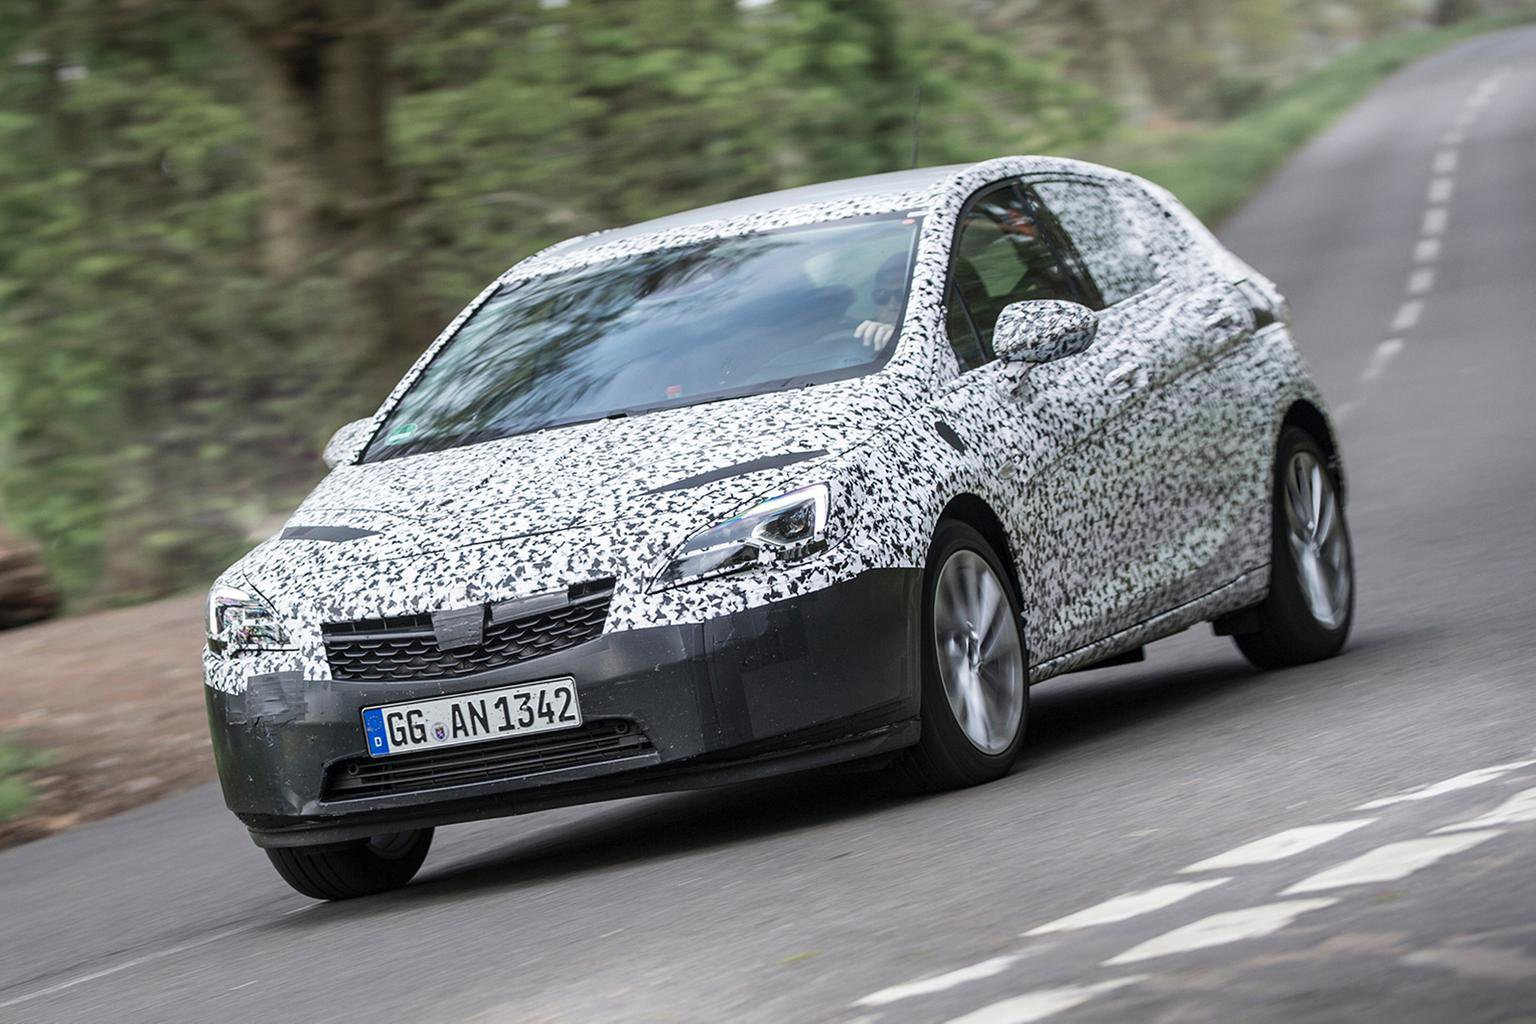 2015 Vauxhall Astra prototype review